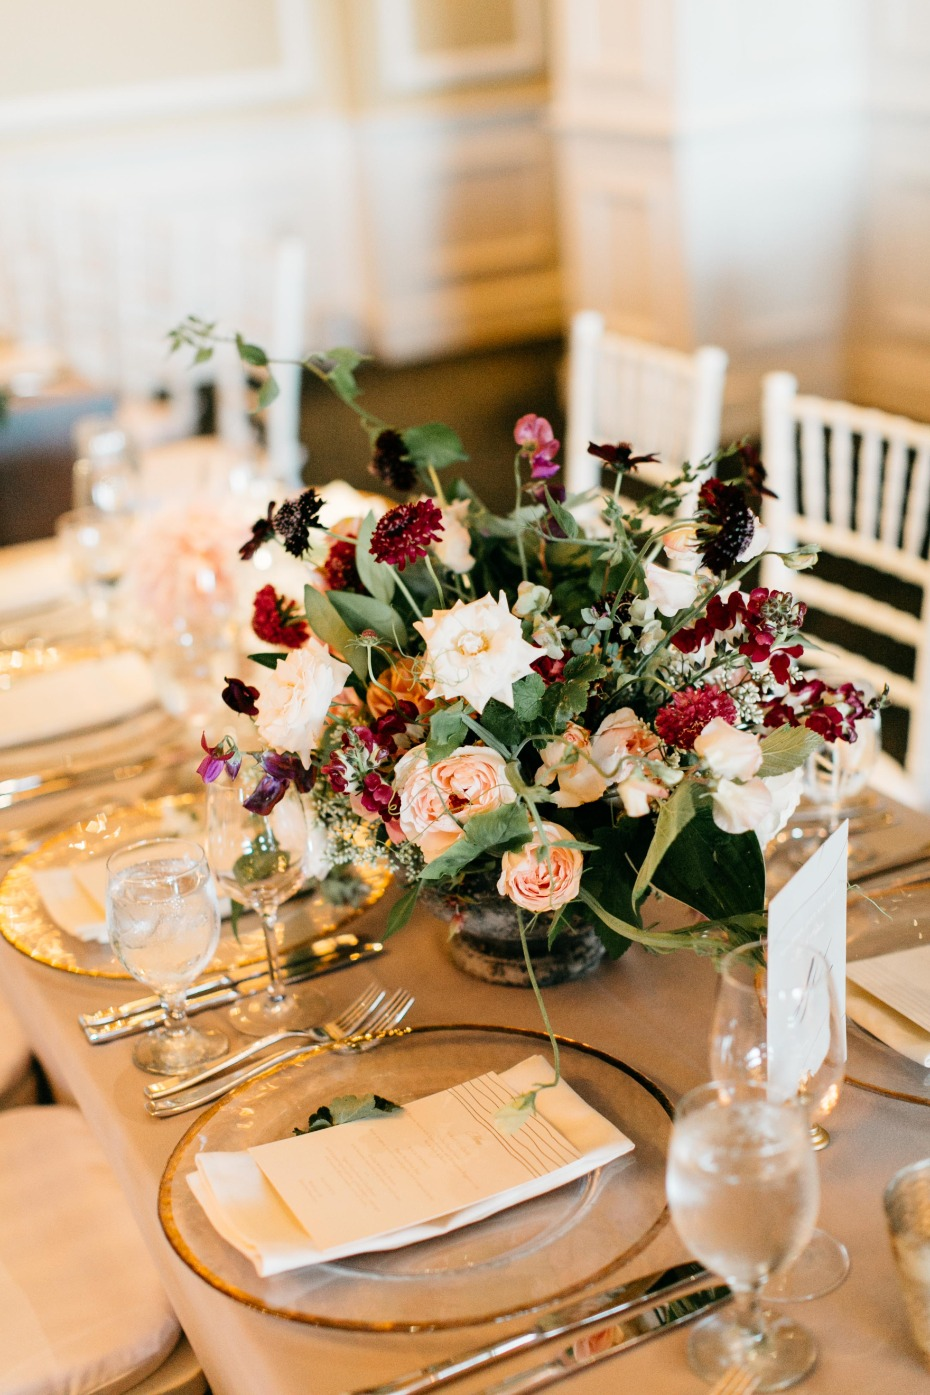 classic and elegant wedding table decor